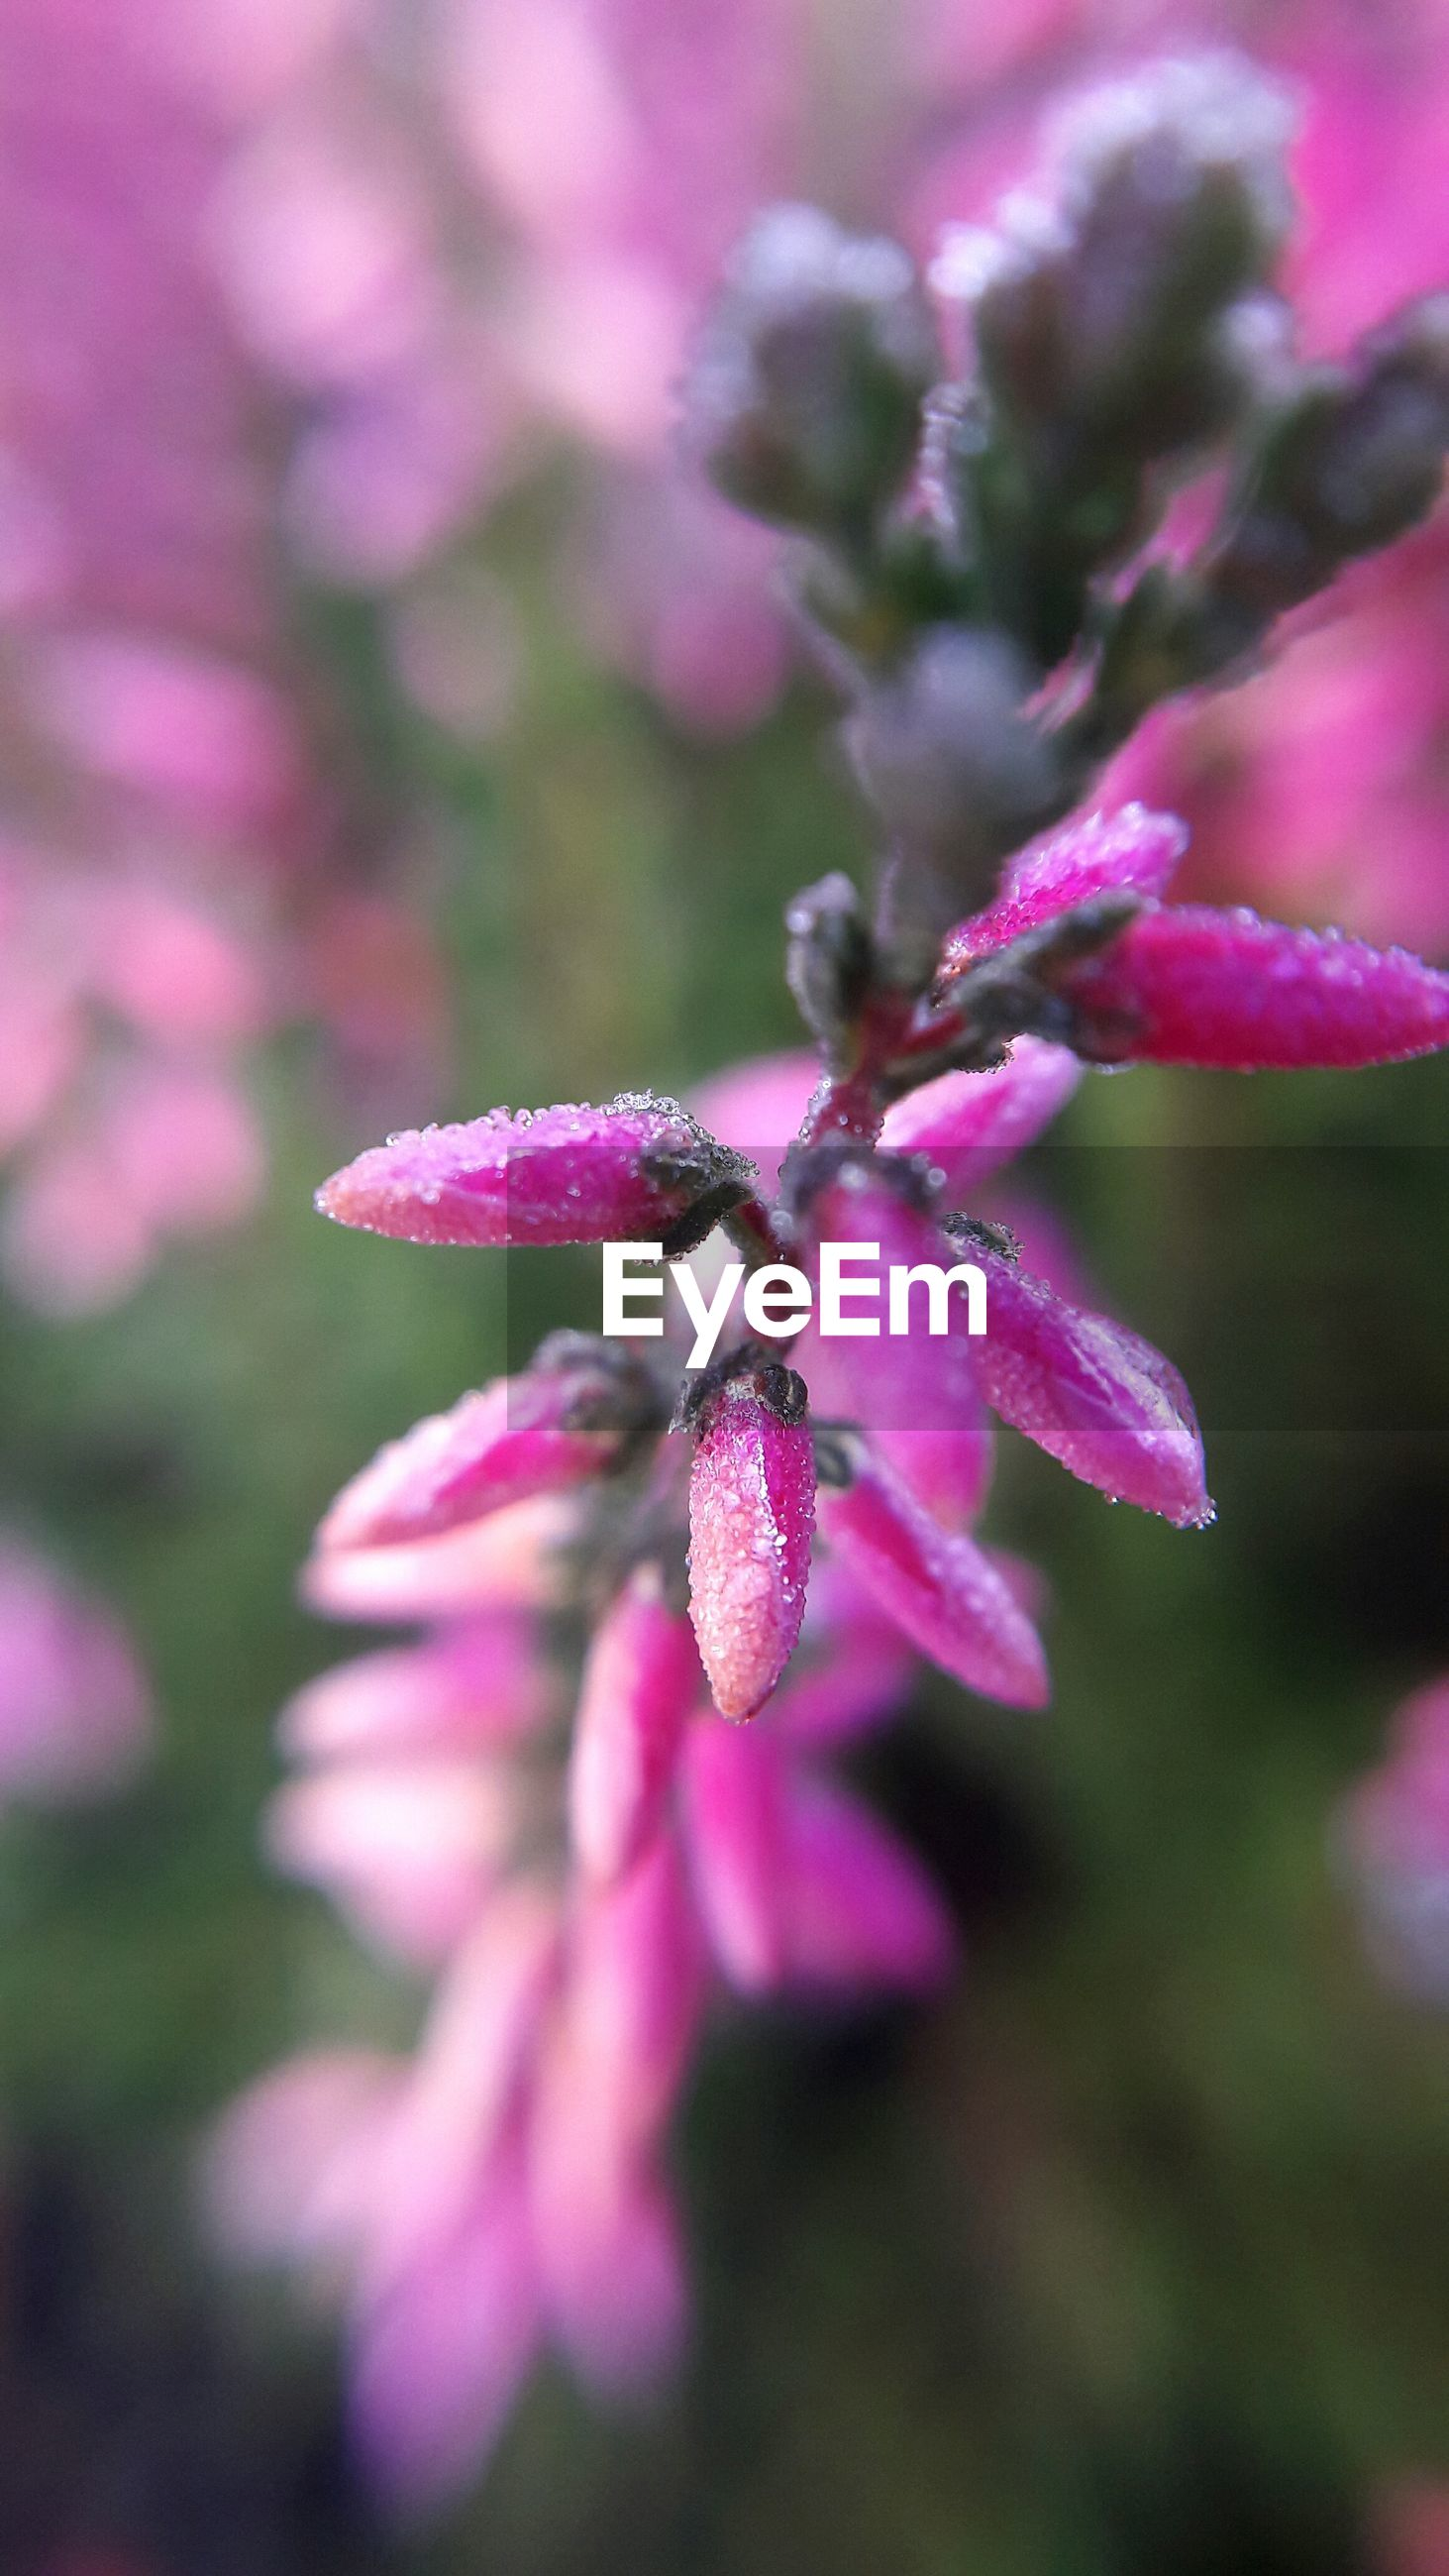 flower, growth, nature, beauty in nature, fragility, freshness, close-up, petal, focus on foreground, pink color, no people, flower head, blooming, outdoors, day